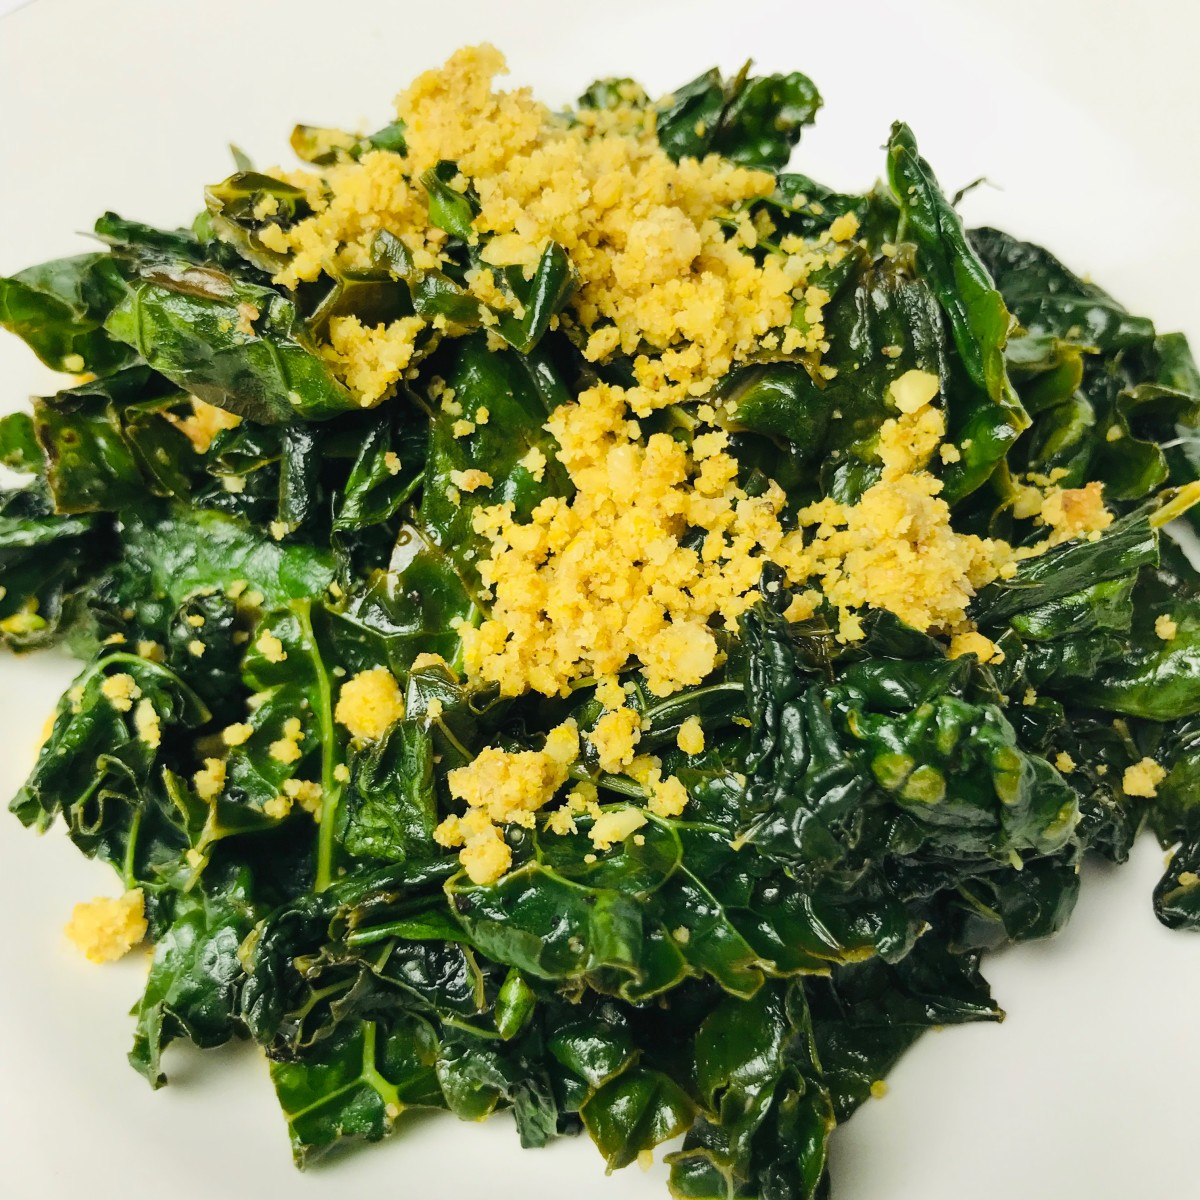 Easy Sauteed Kale with Vegan Walnut Parmesan